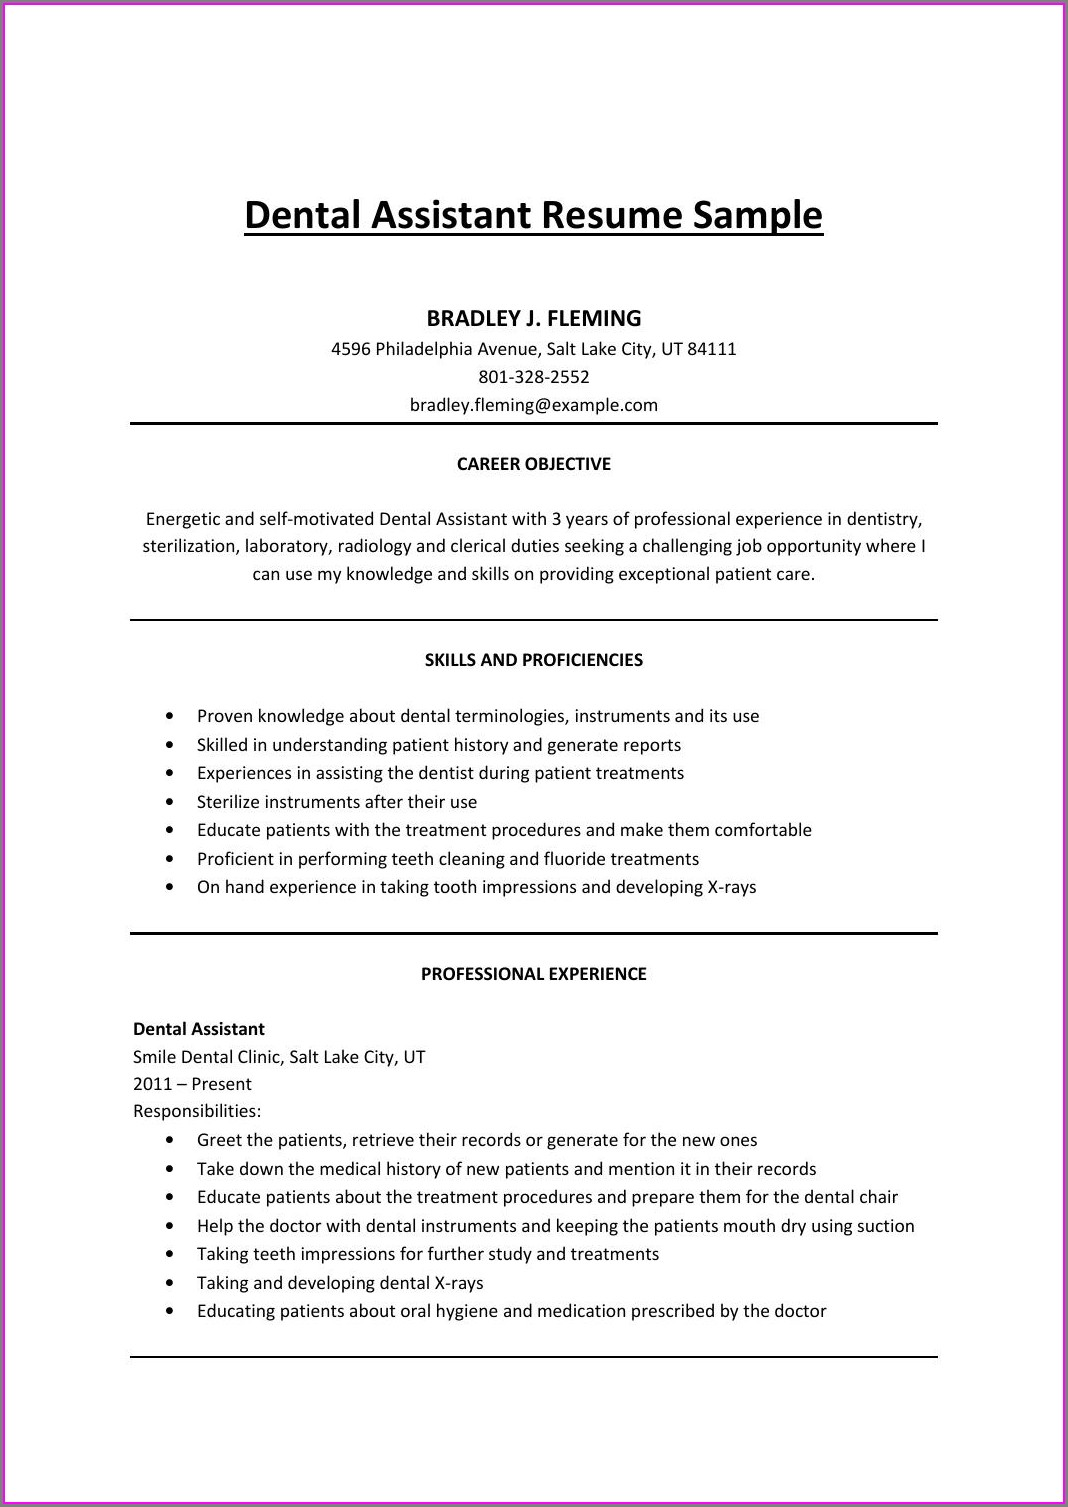 Resume Objective Examples For Dental Assistant